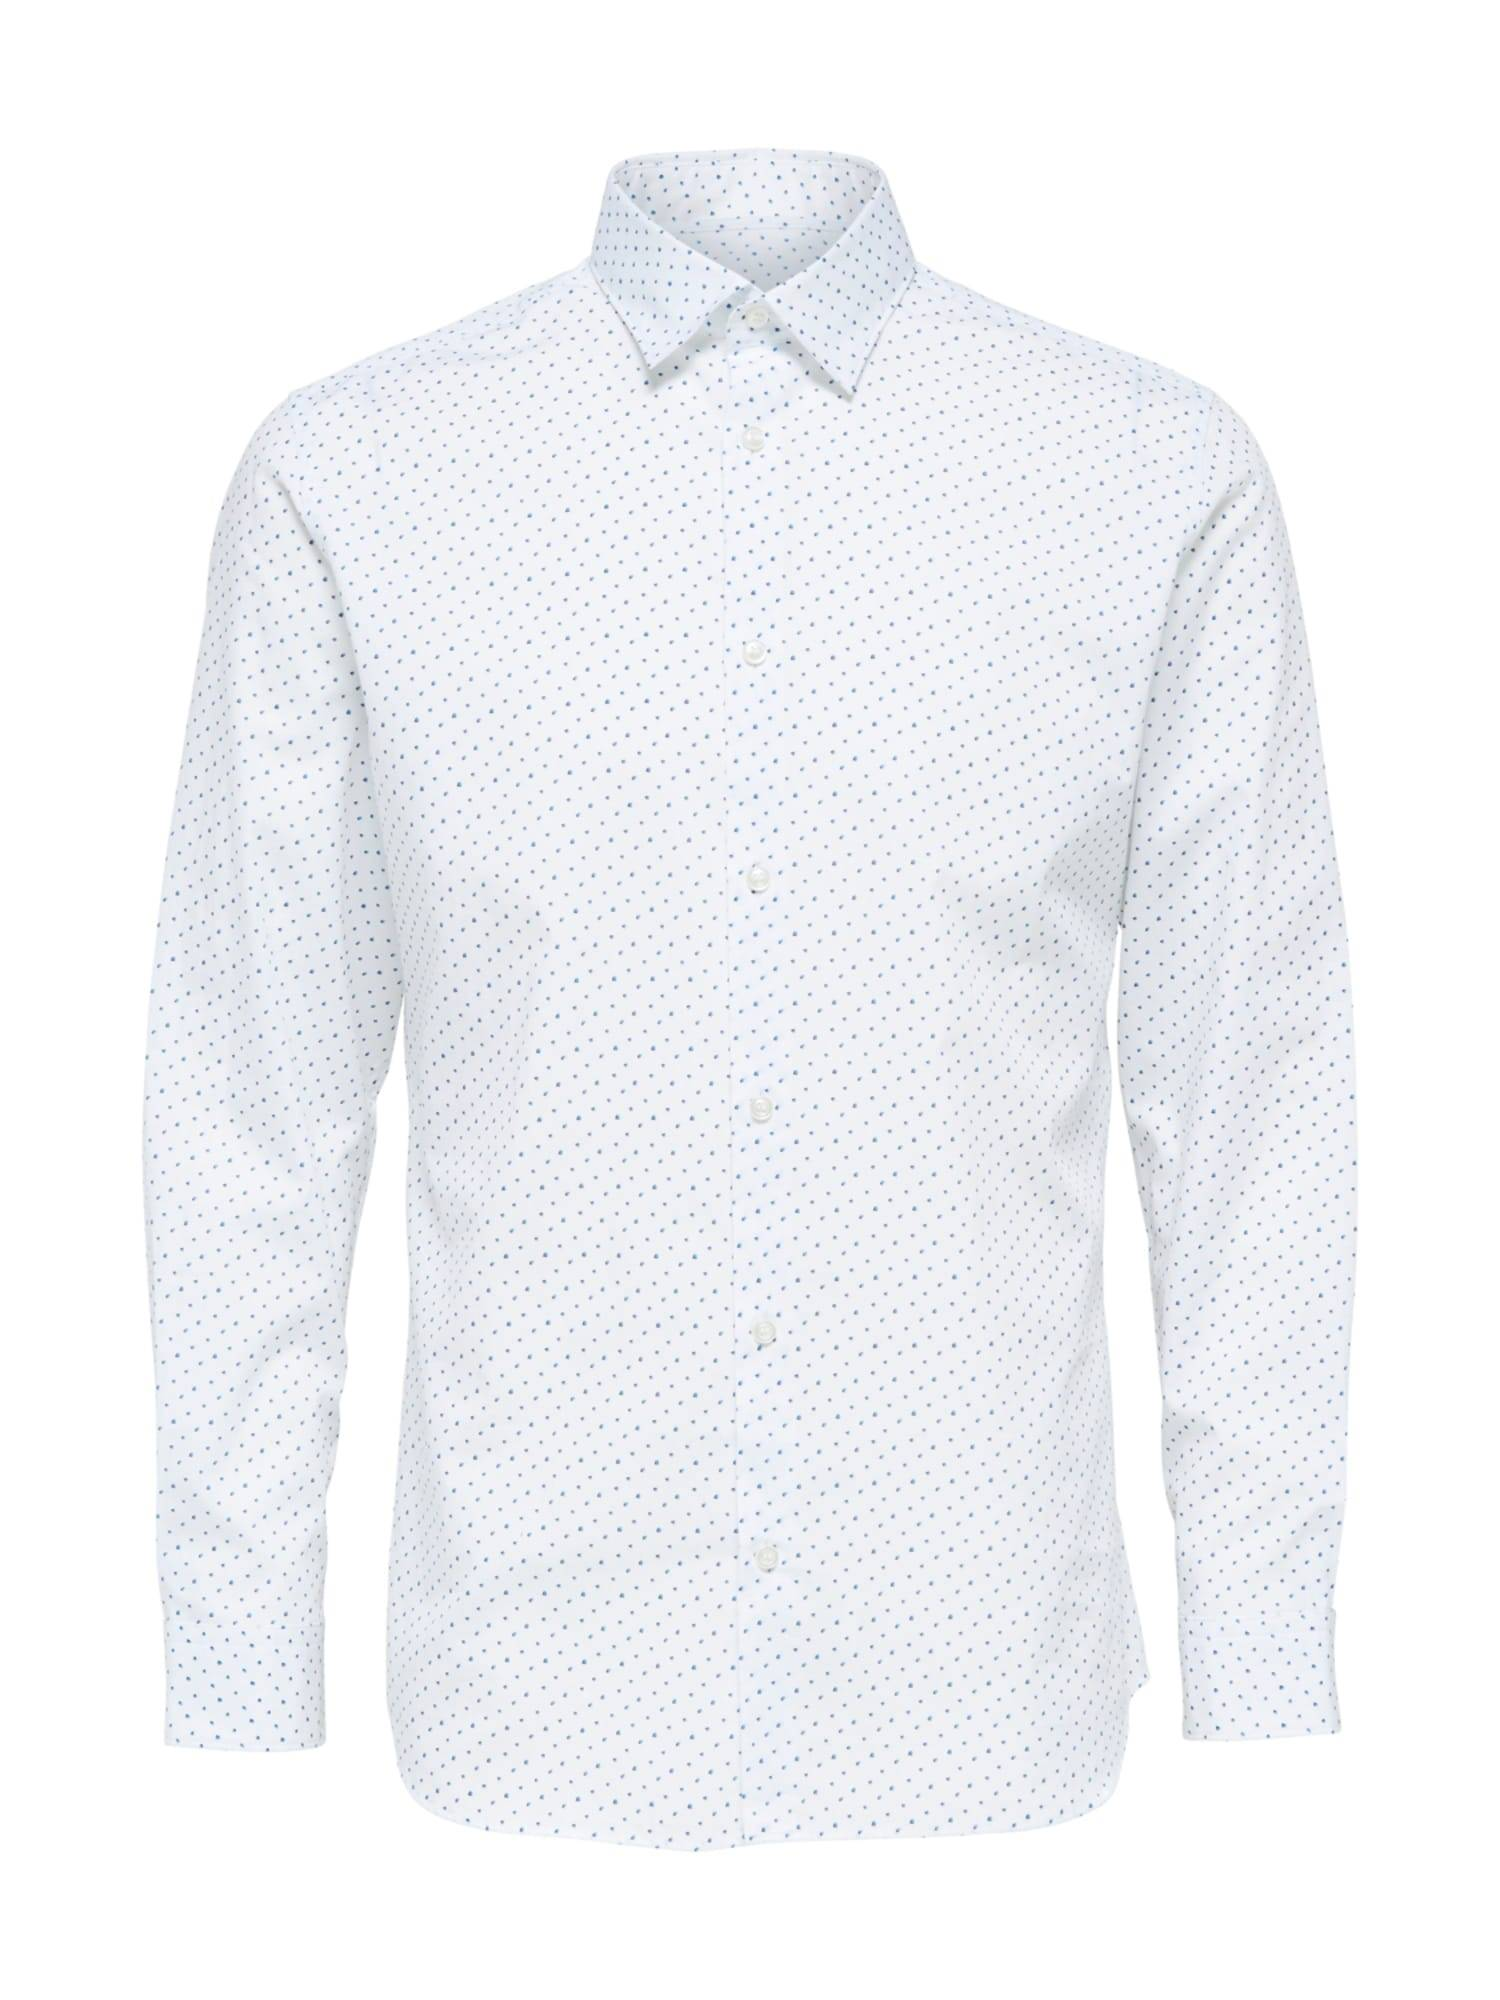 SELECTED HOMME Chemise business 'Cory'  - Blanc - Taille: M - male